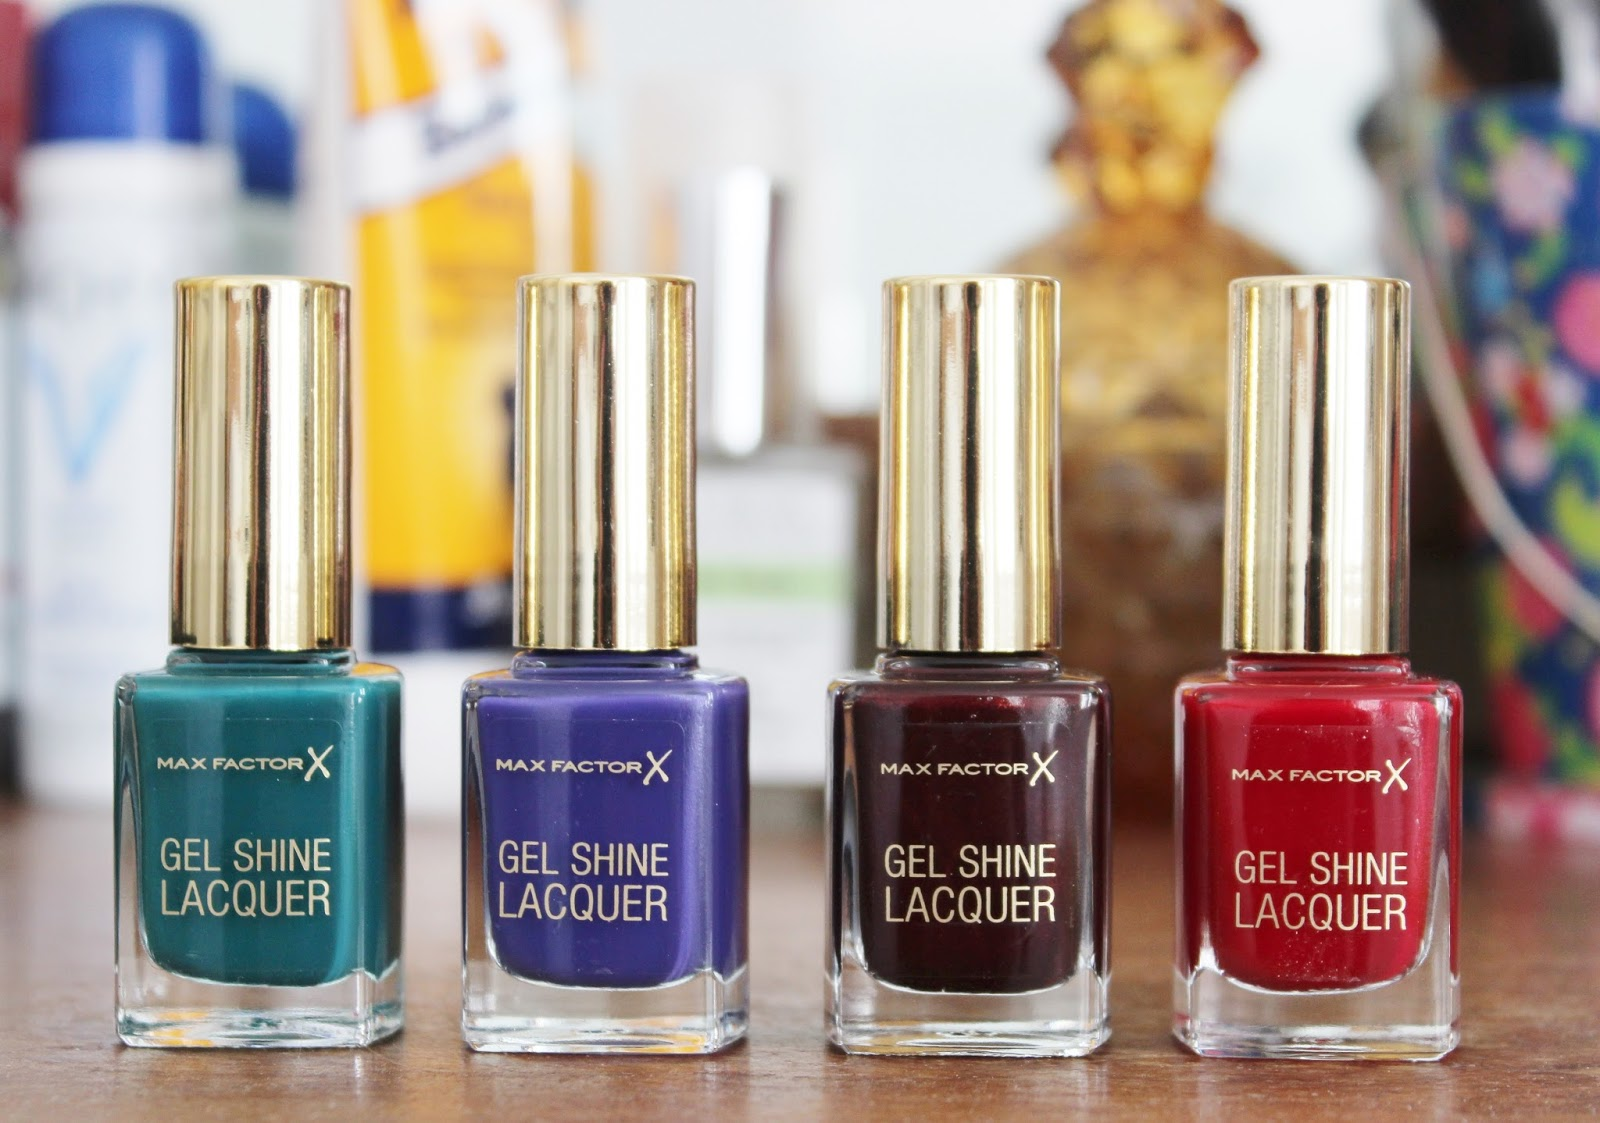 Max Factor Gel Shine lacquer nail polishes, Gleaming Teal, Lacquered Violet, Sheen Merlot, Patent Poppy